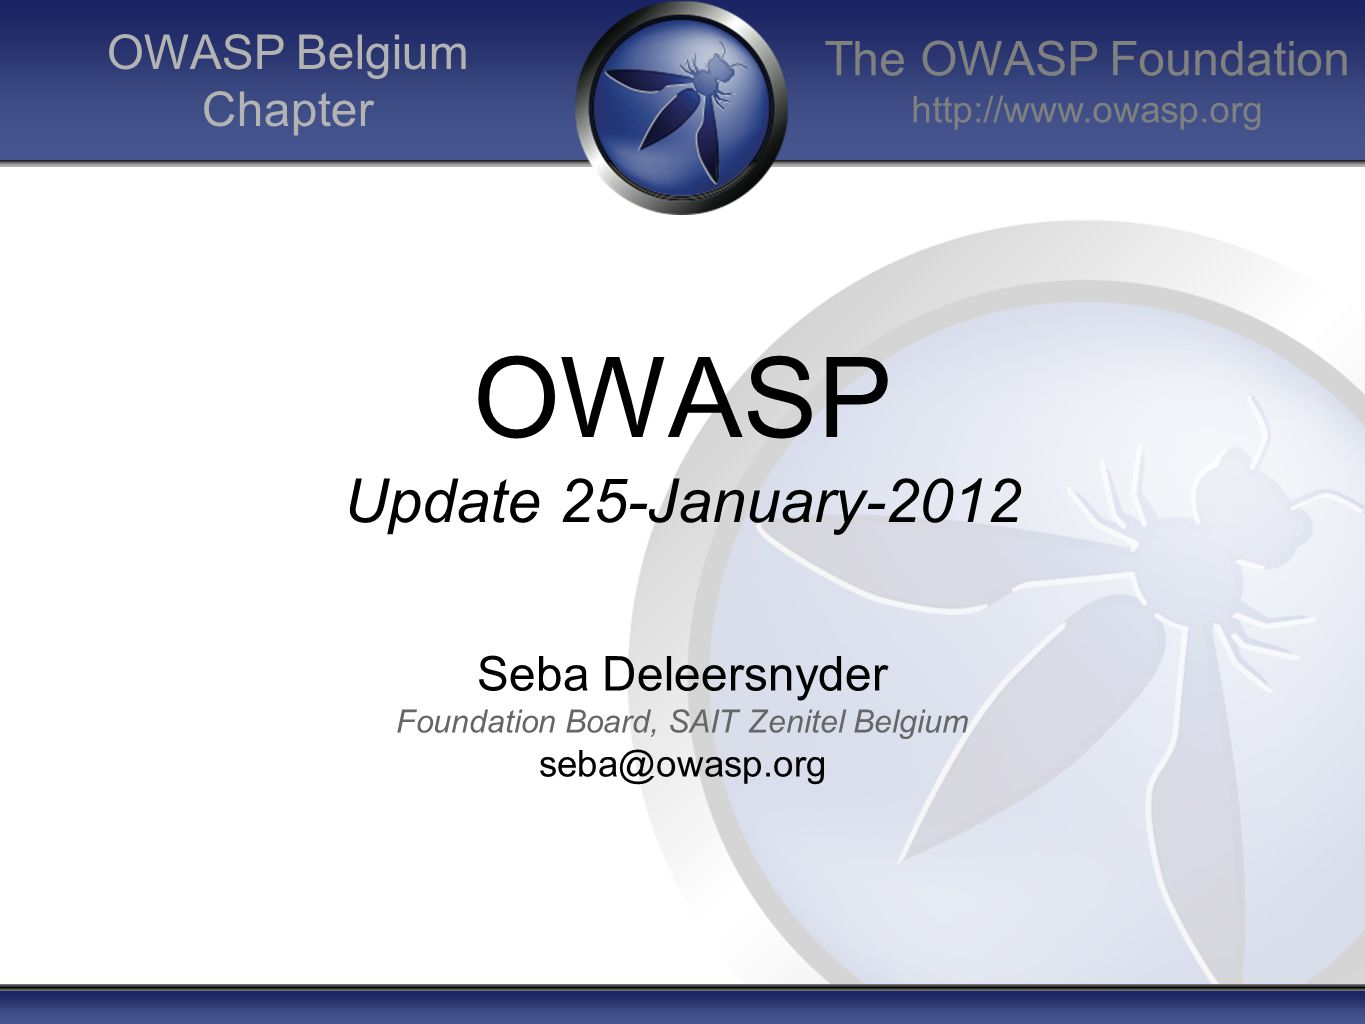 The OWASP Foundation http://www.owasp.org OWASP Belgium Chapter OWASP Update 25-January-2012 Seba Deleersnyder Foundation Board, SAIT Zenitel Belgium seba@owasp.org